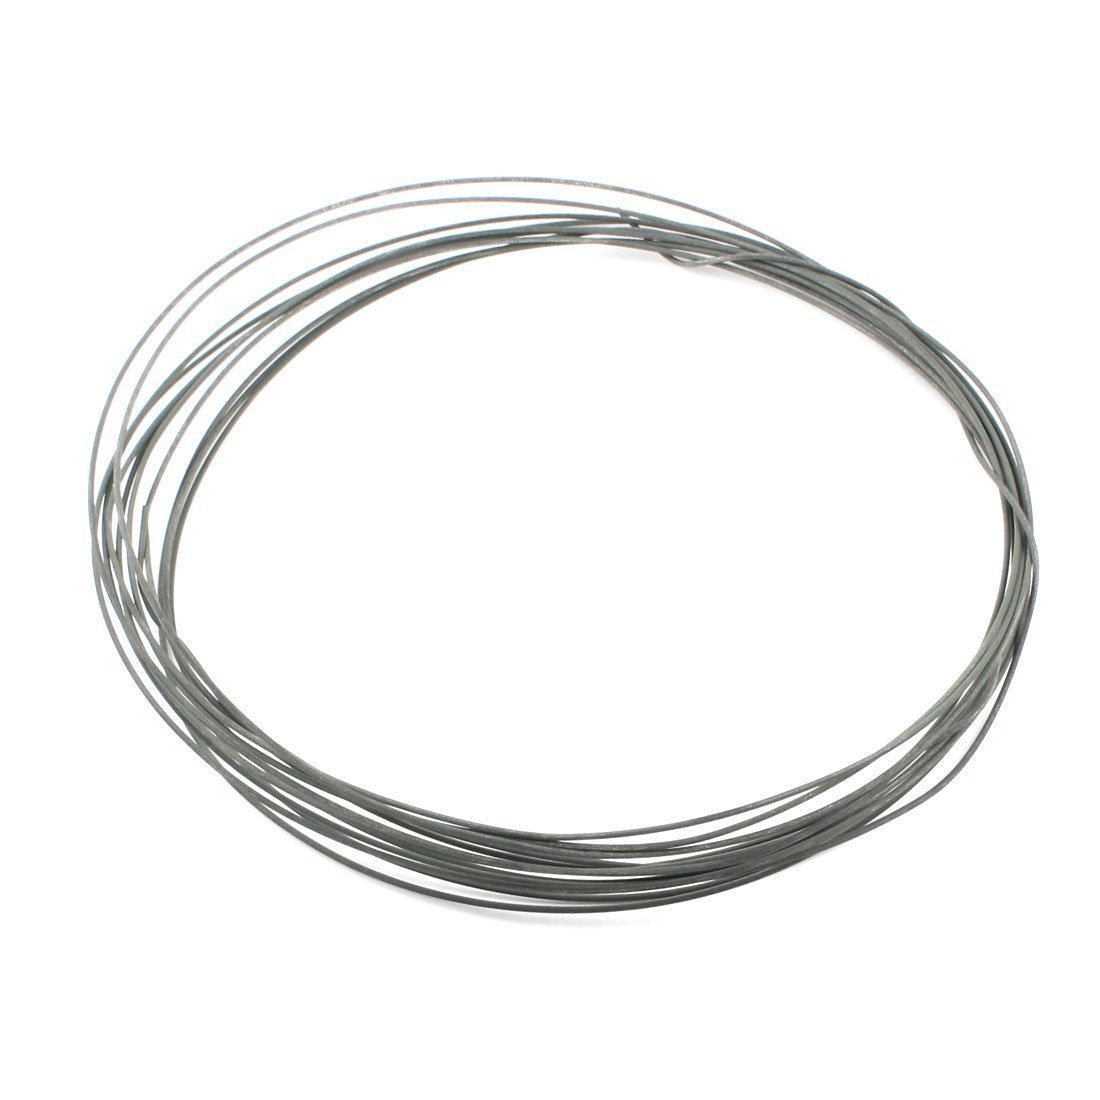 25Ft 1.6mm Dia AWG14 Nichrome Resistance Heating Coils Resistor Wire ...